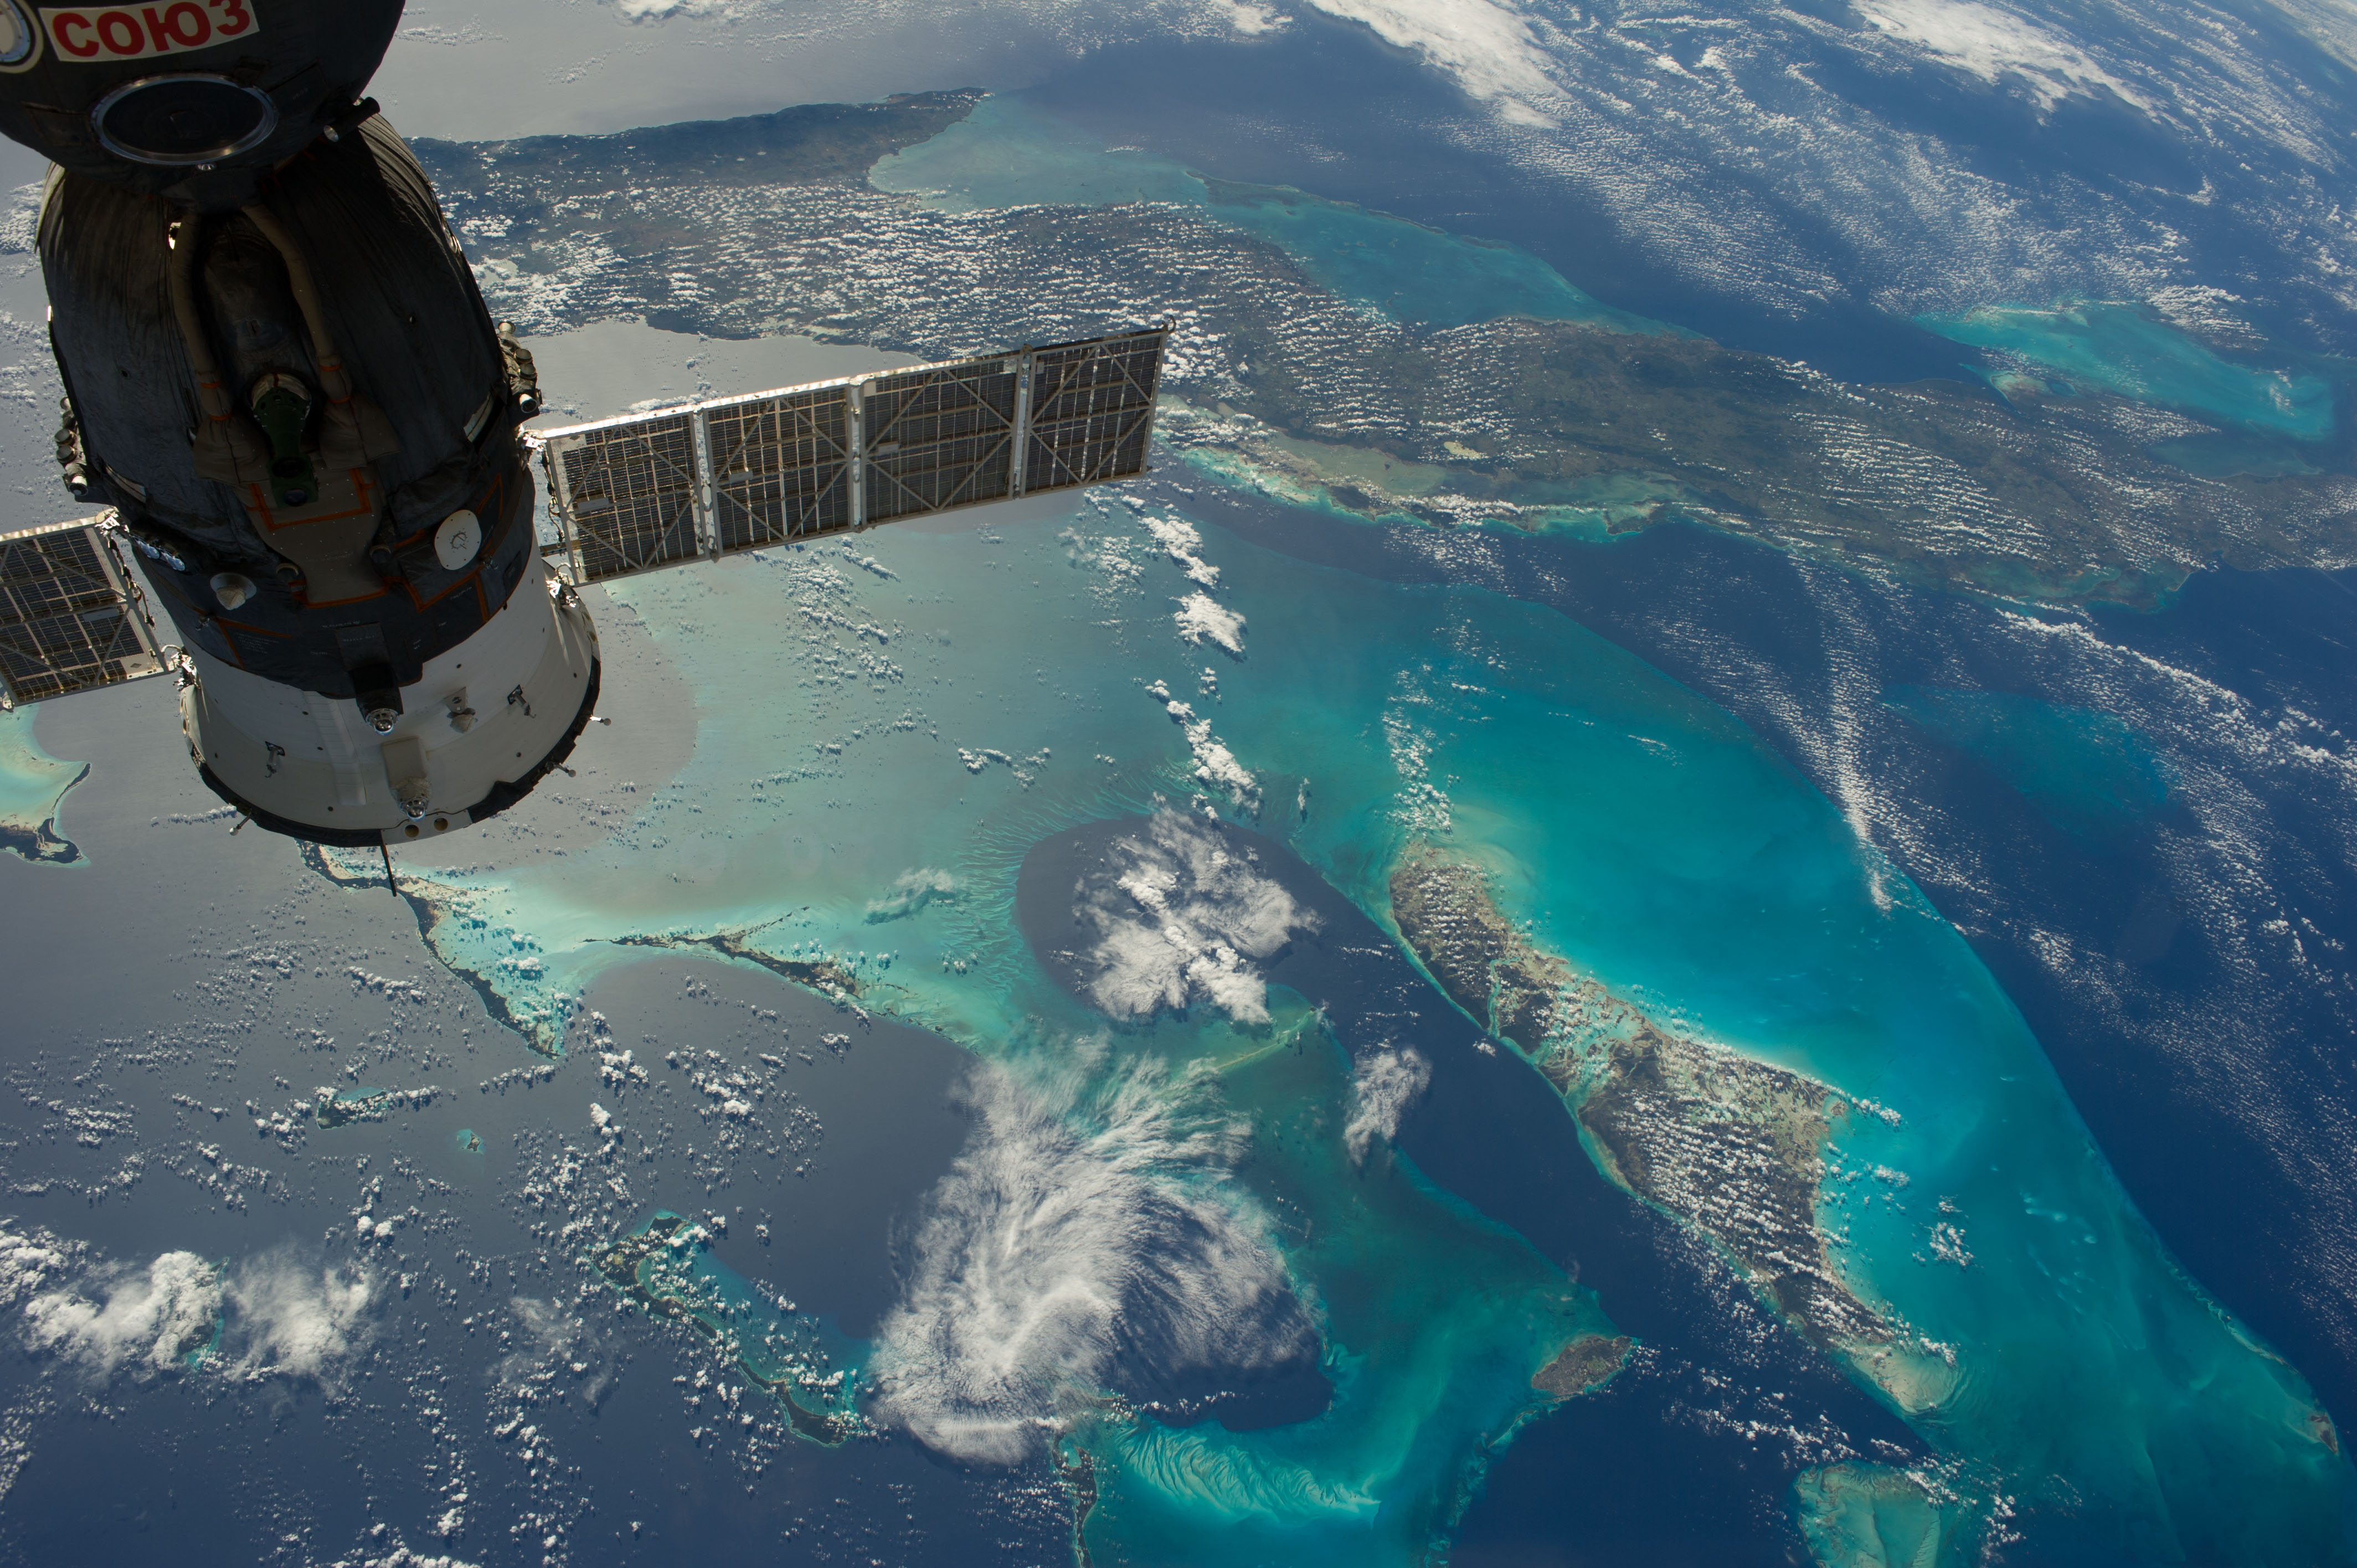 fb409b ISS-caribean-photo-from-space-pho.jpeg